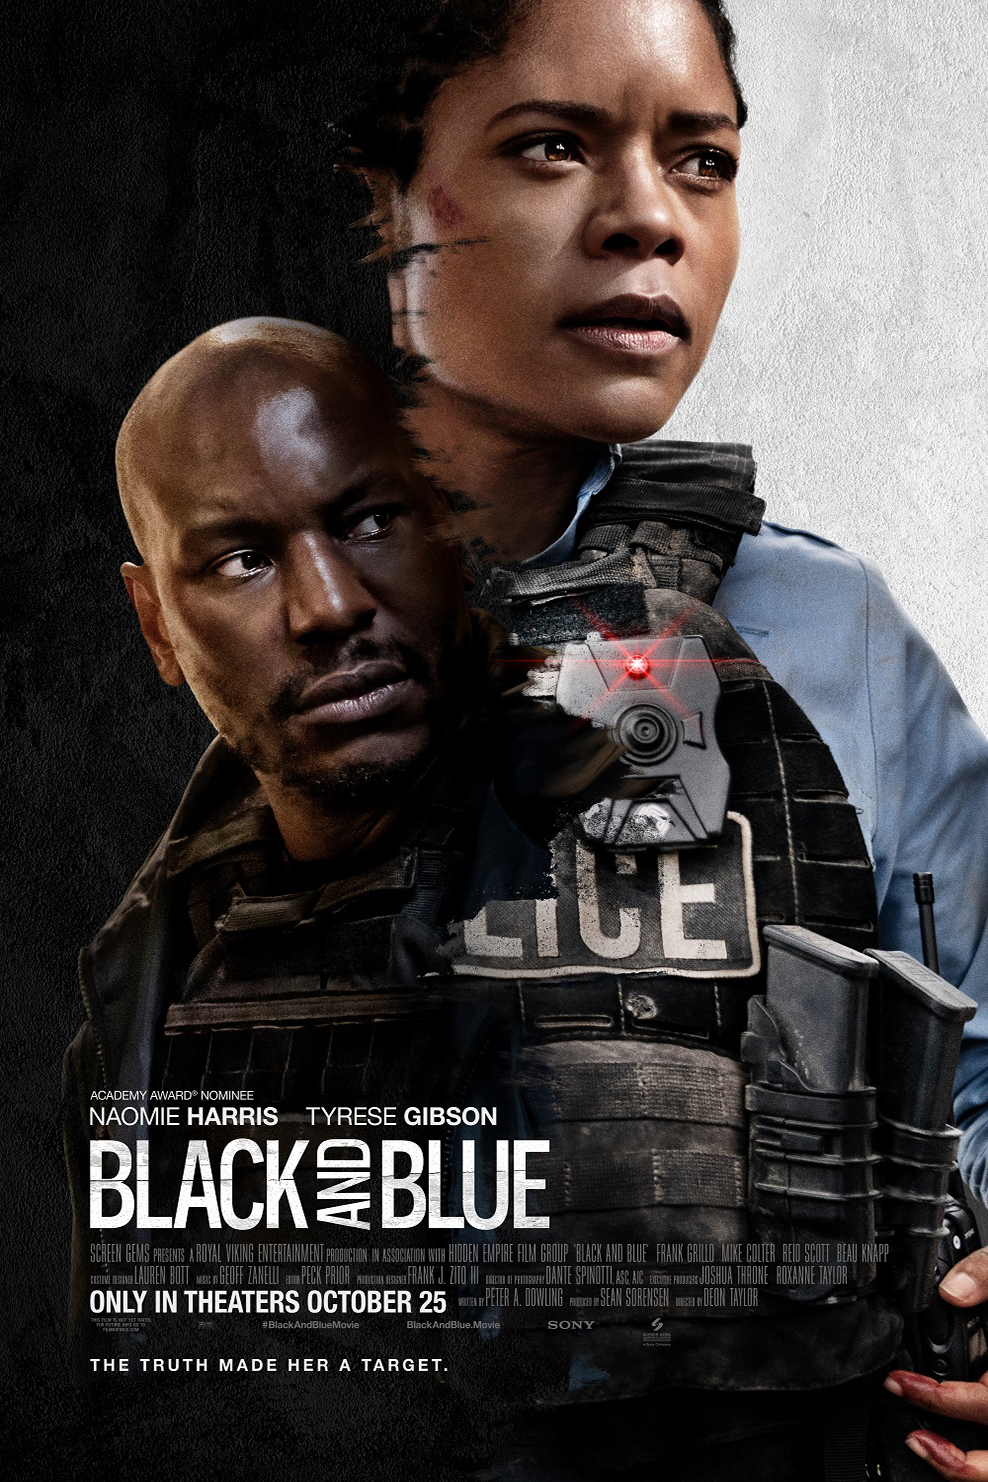 Poster for Black and Blue